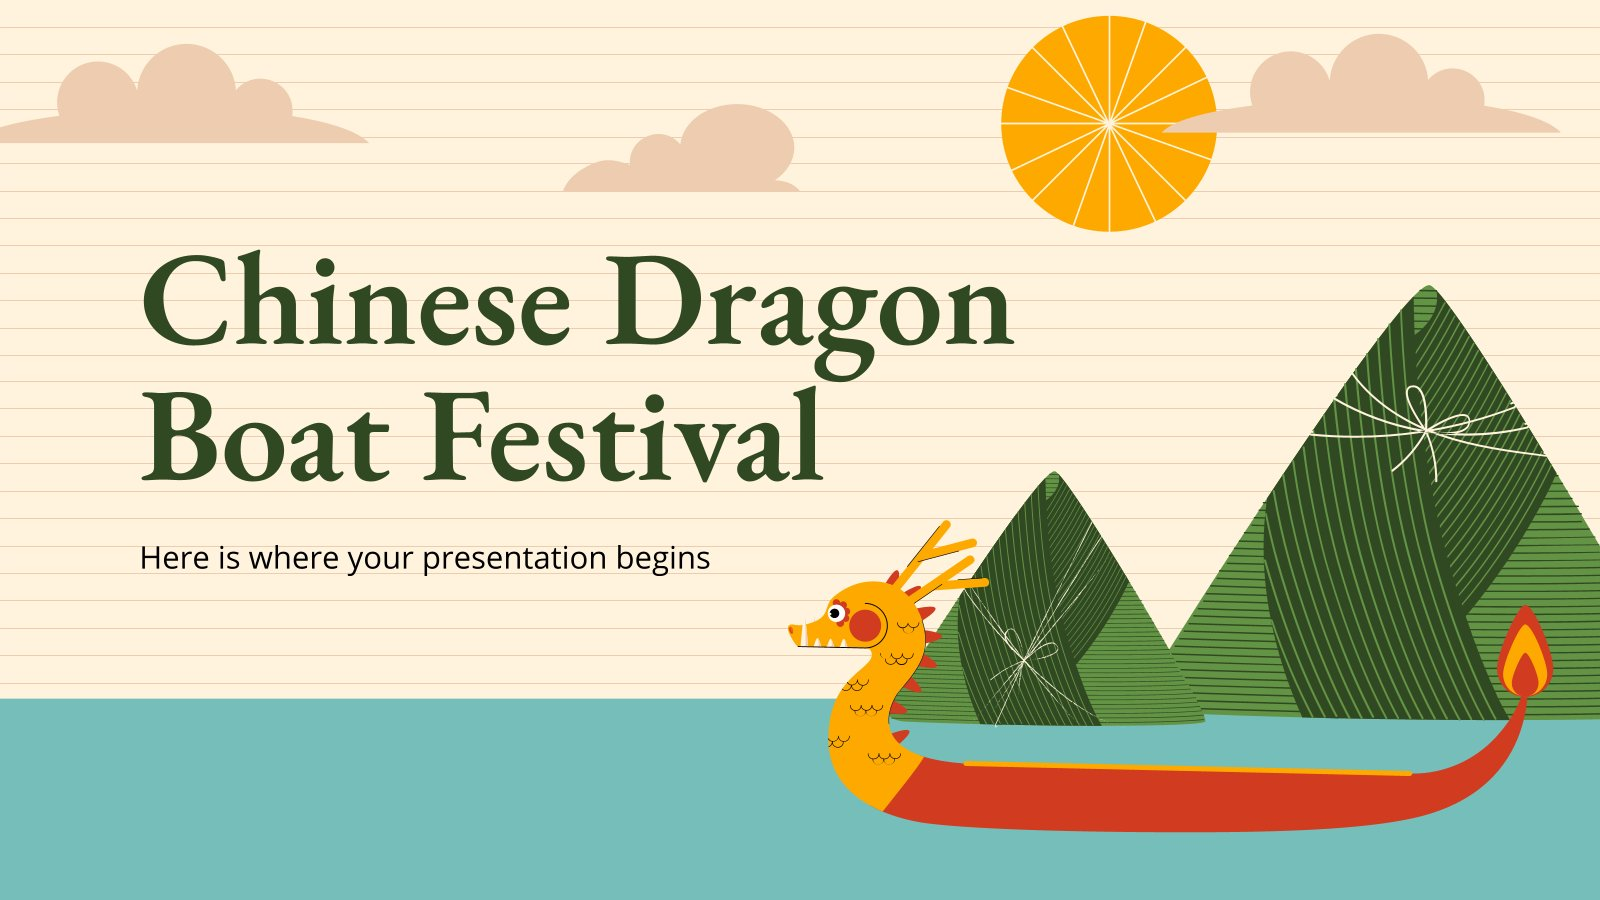 Chinese Dragon Boat Festival presentation template